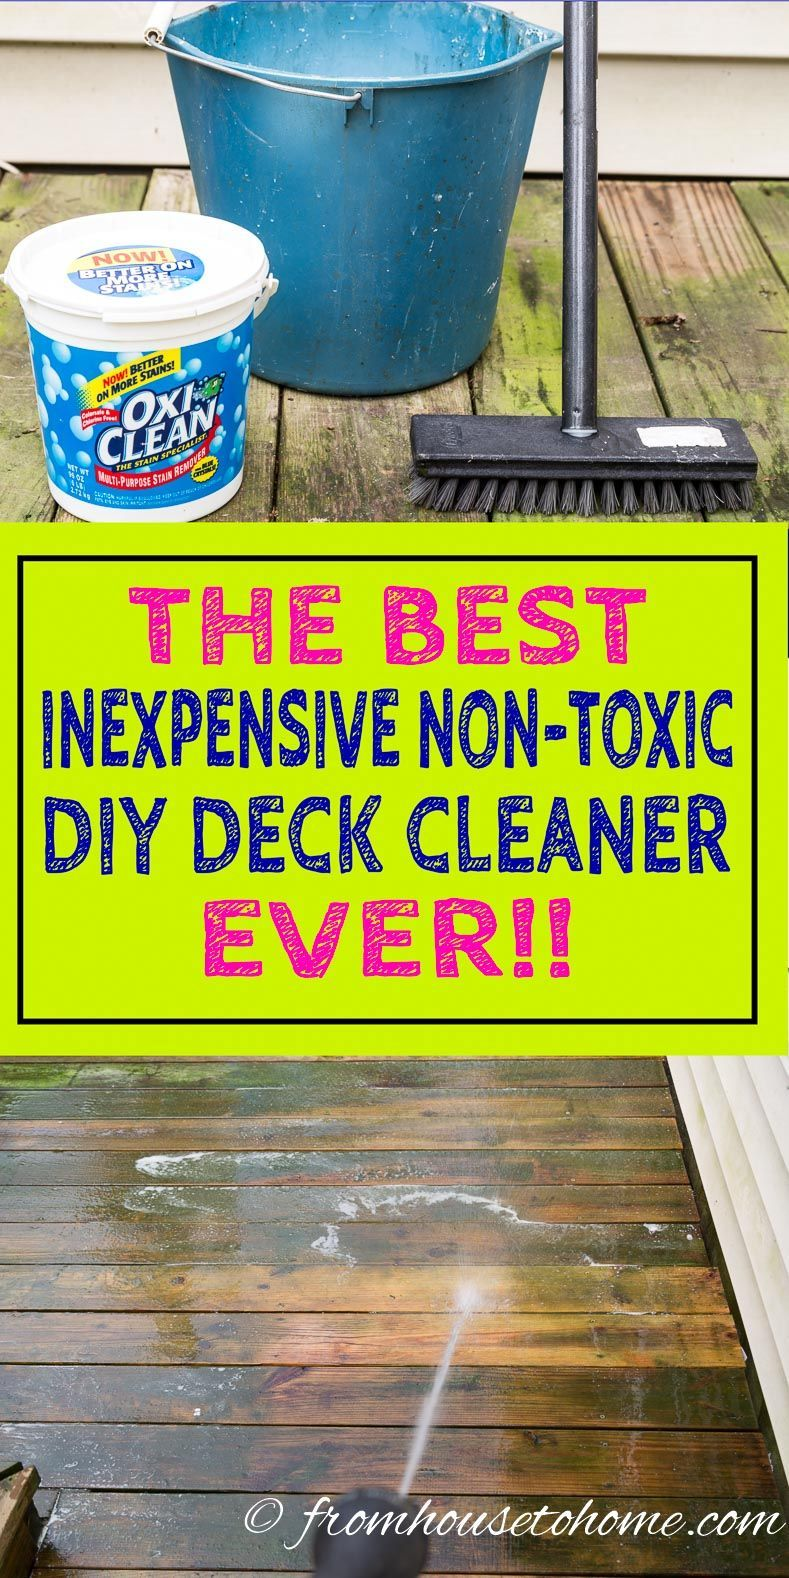 the best inexpensive non toxic homemade deck cleaner | gardening